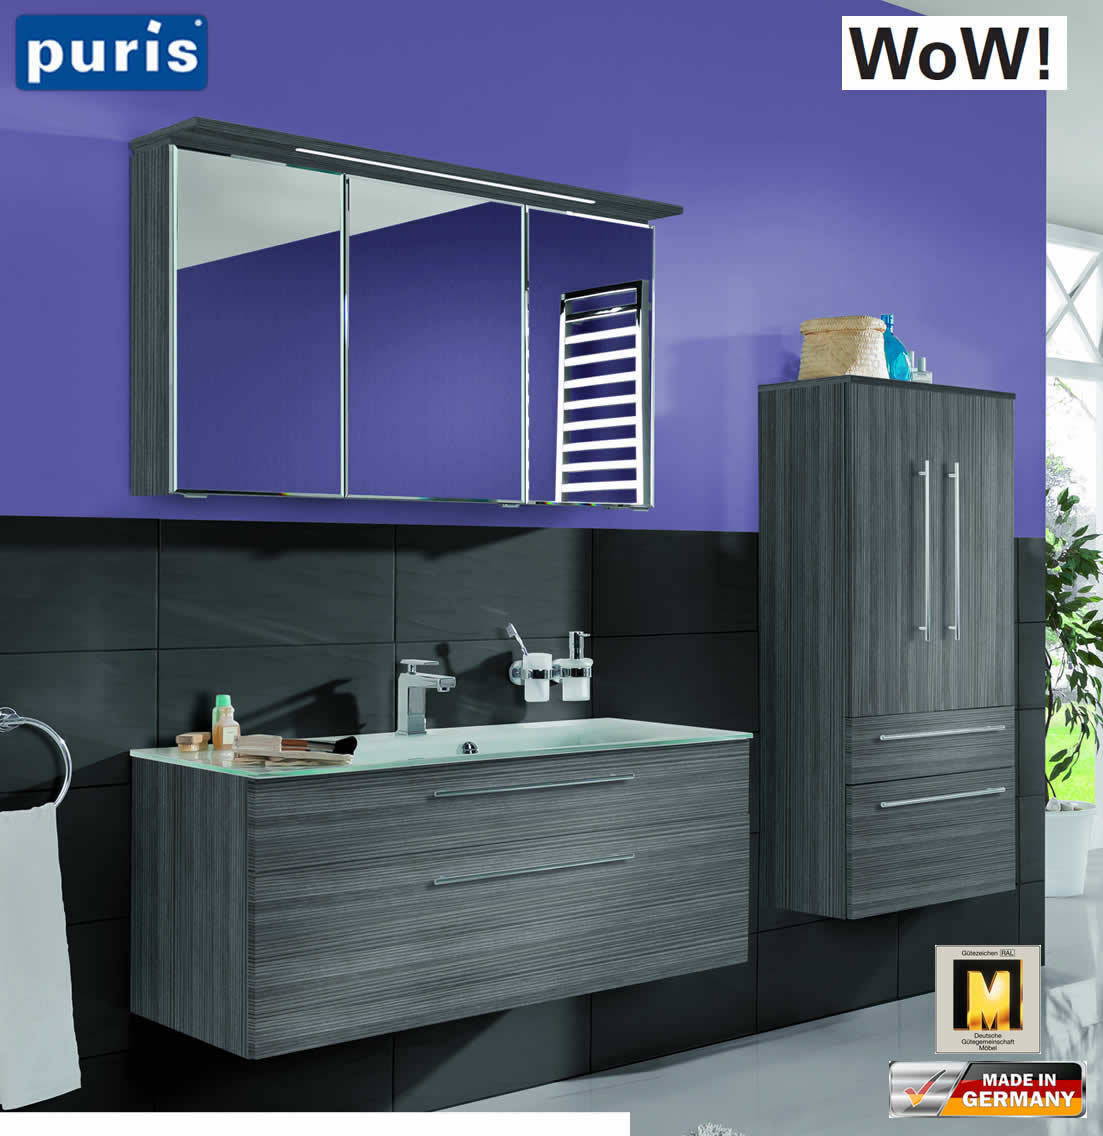 Puris WOW | Impuls Home